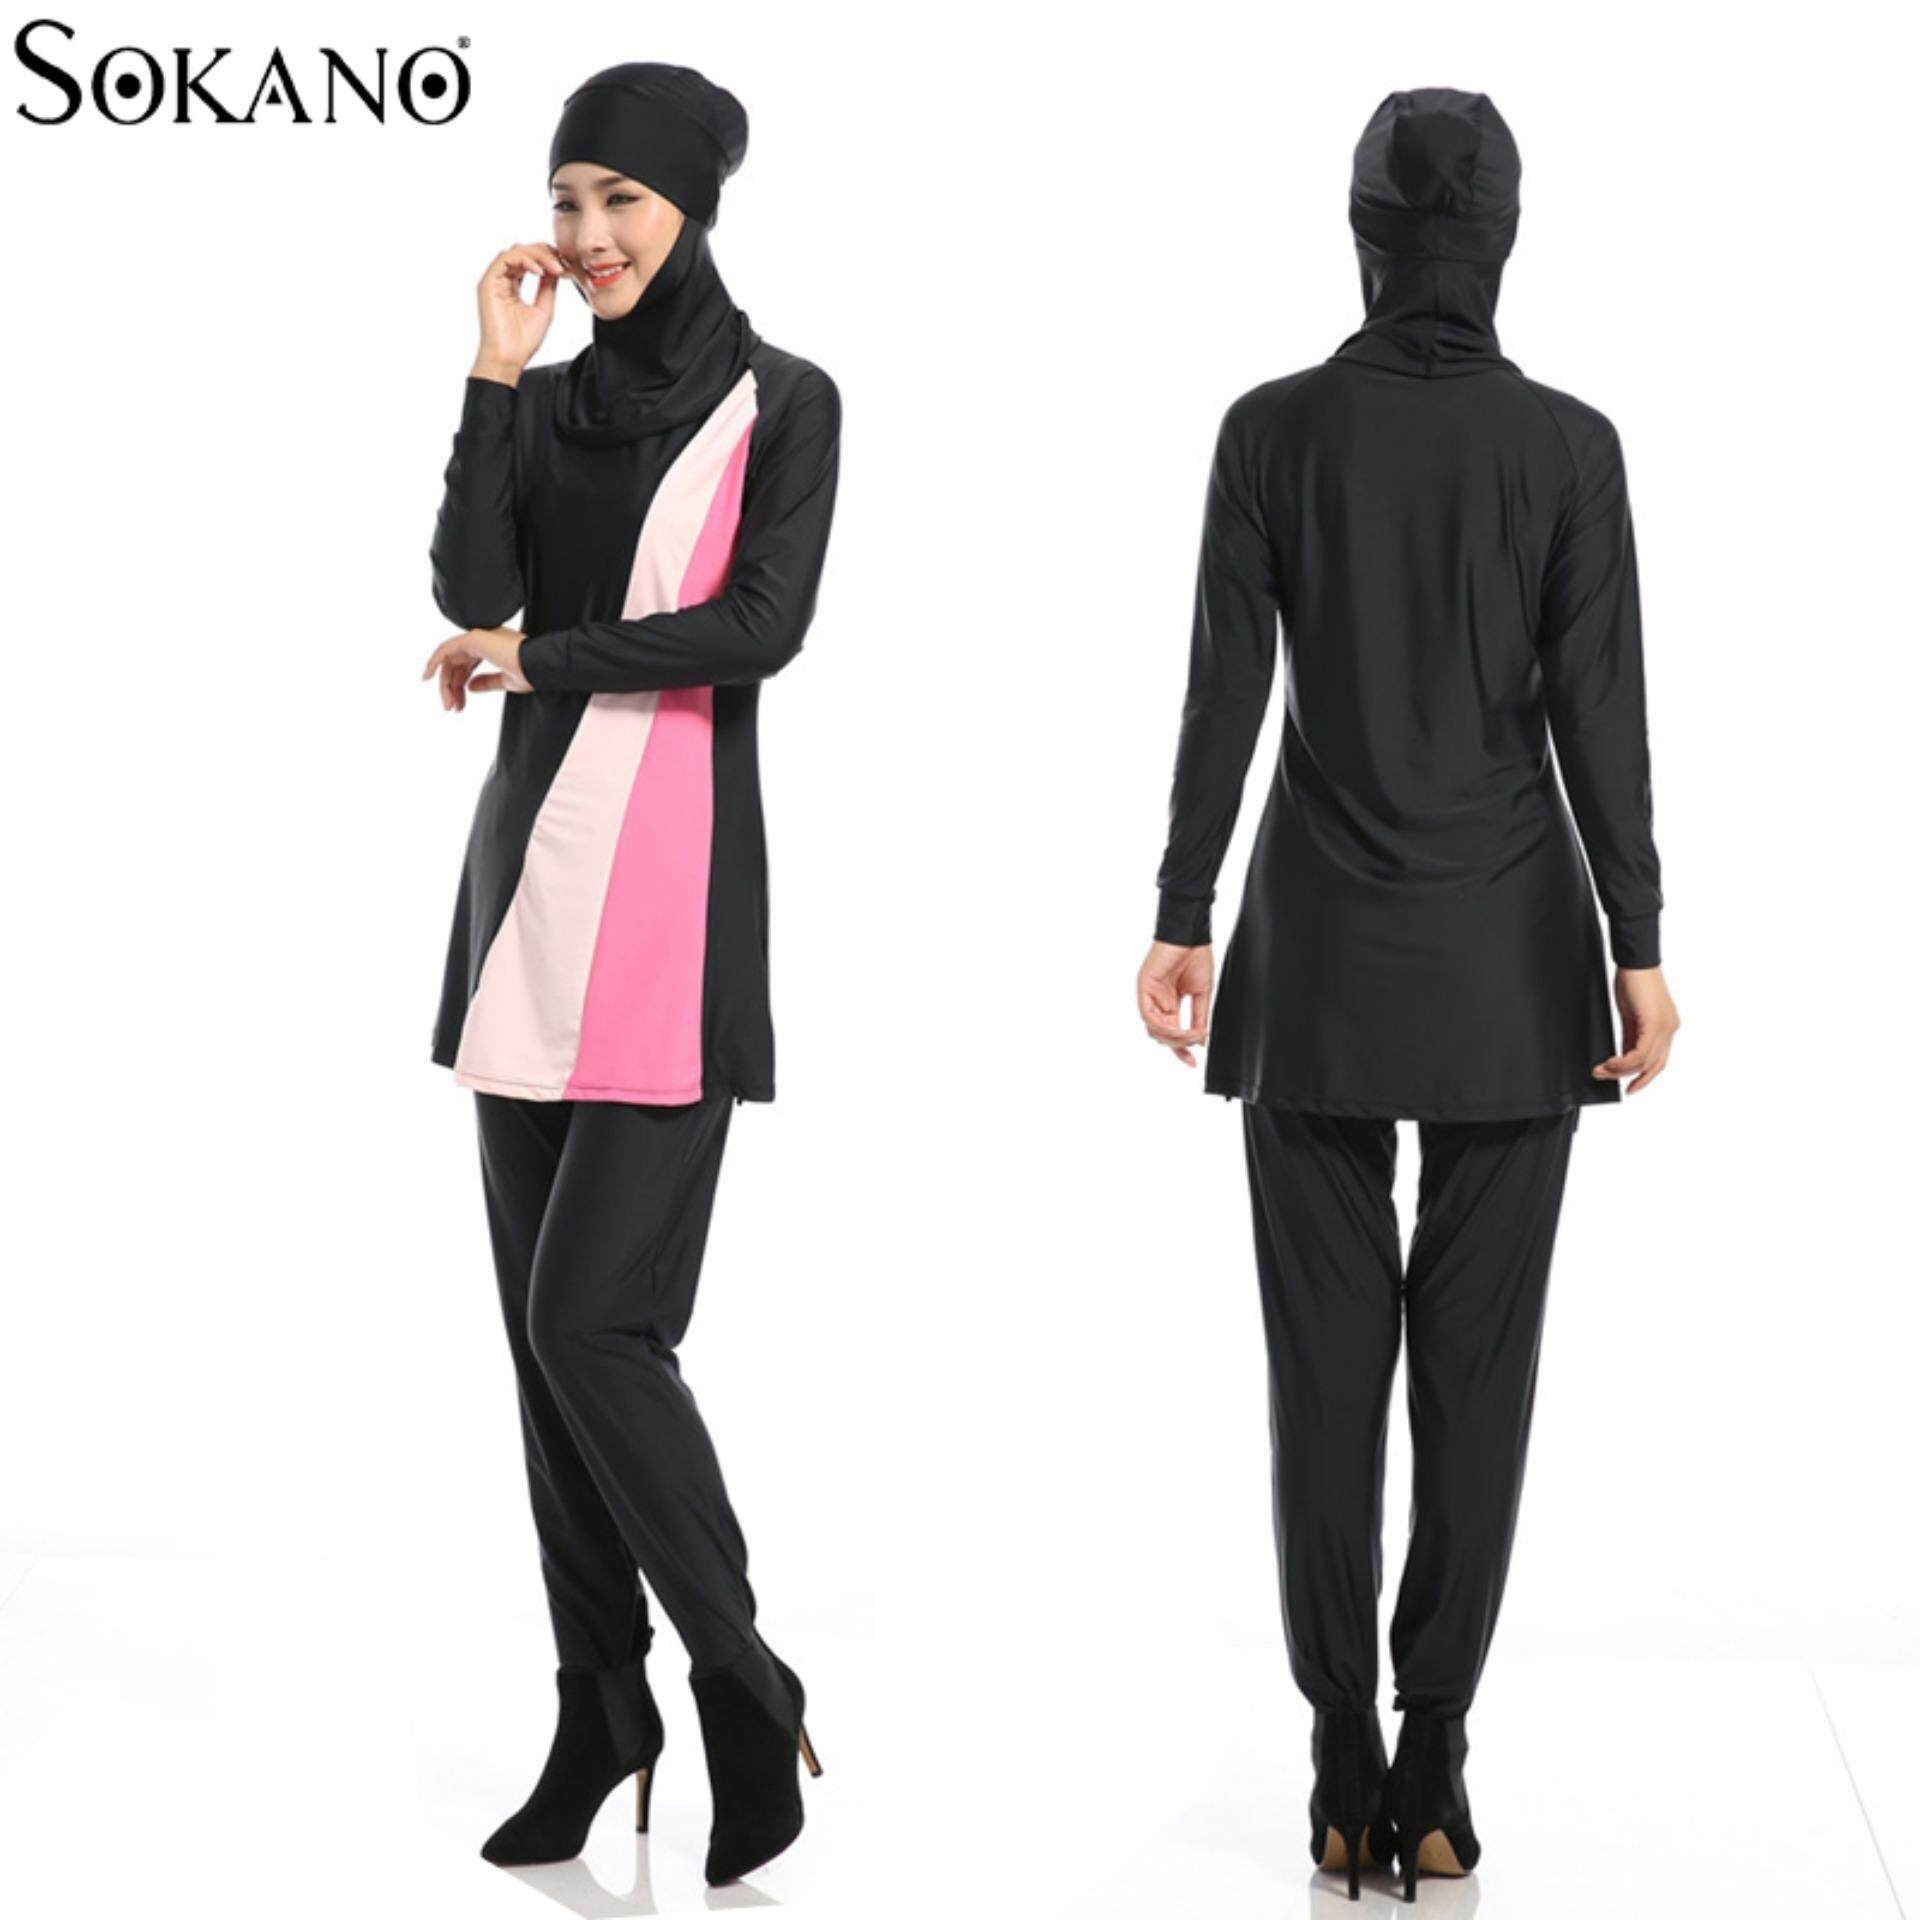 Sokano Fashion Ladies 5587 Muslimah Women Swim Suit Wear Sport Clothing - Black